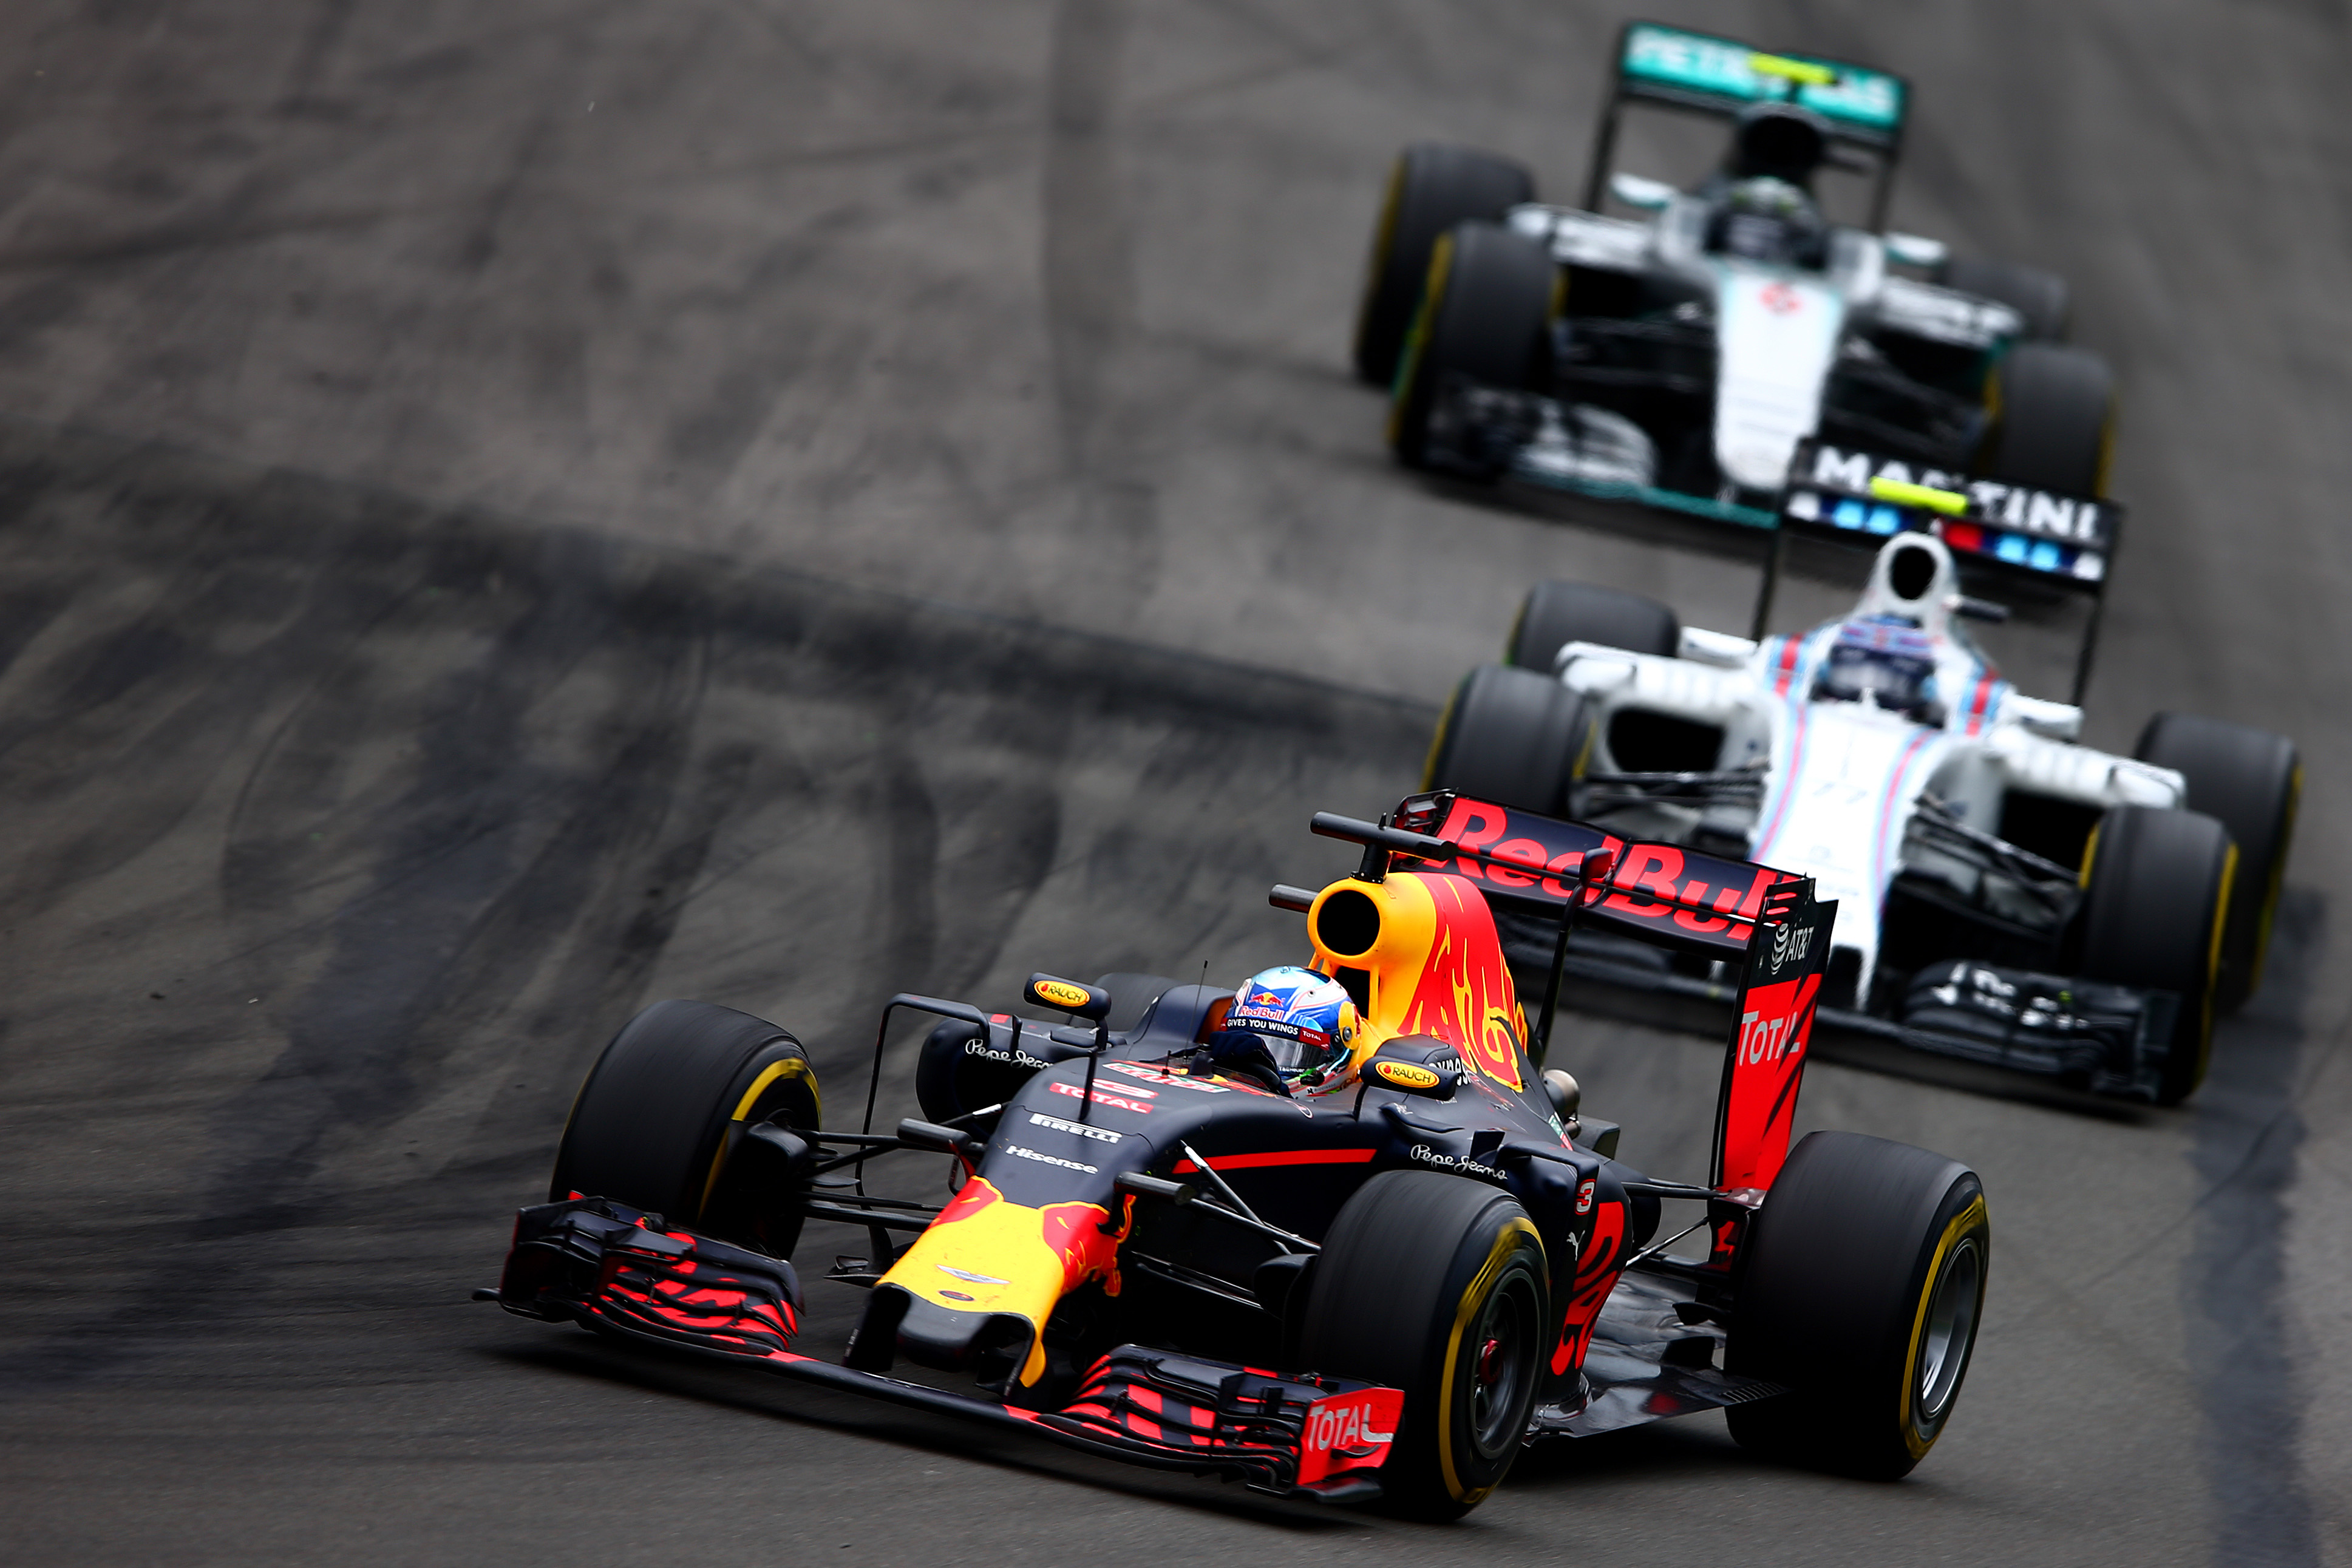 Daniel Ricciardo in the Red Bull leads the Williams of Valtteri Bottas and Nico Rosberg's Mercedes in Montreal. But nothing went right for the Perth driver.